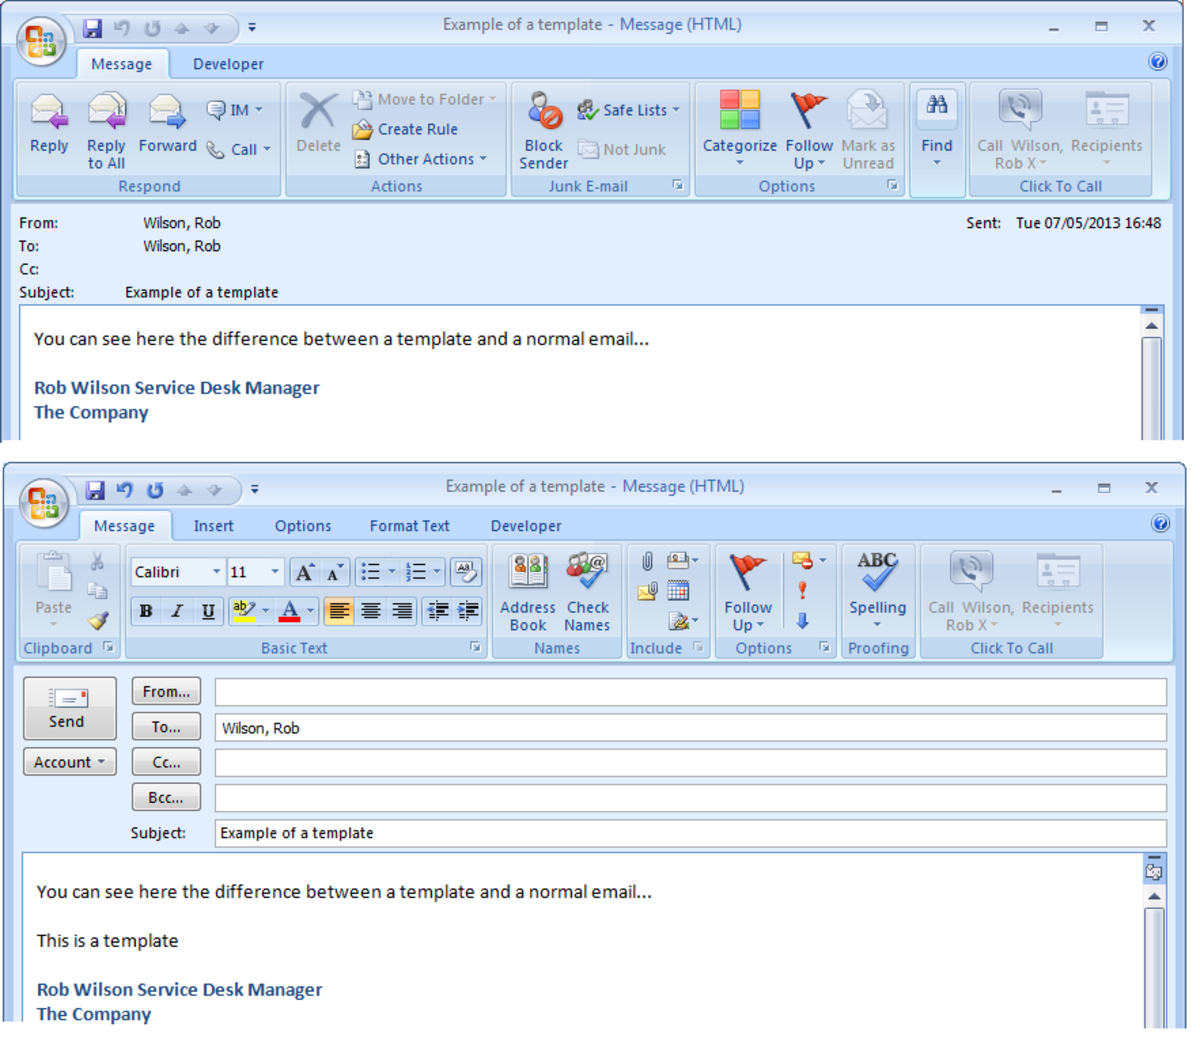 Example of a normal email message (top) and a template (bottom) created in Outlook 2007 or Outlook 2010 to illustrate the differences.